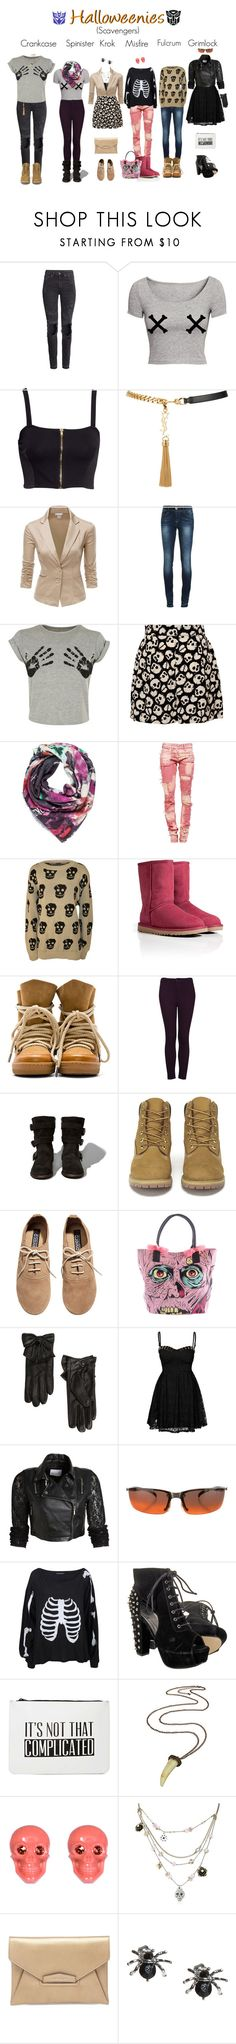 """Halloweenie scavengers"" by femme-mecha ❤ liked on Polyvore featuring H&M, Yves Saint Laurent, Doublju, Philipp Plein, BeckSöndergaard, Isabel Marant, CO, UGG Australia, Topshop and Abercrombie & Fitch"